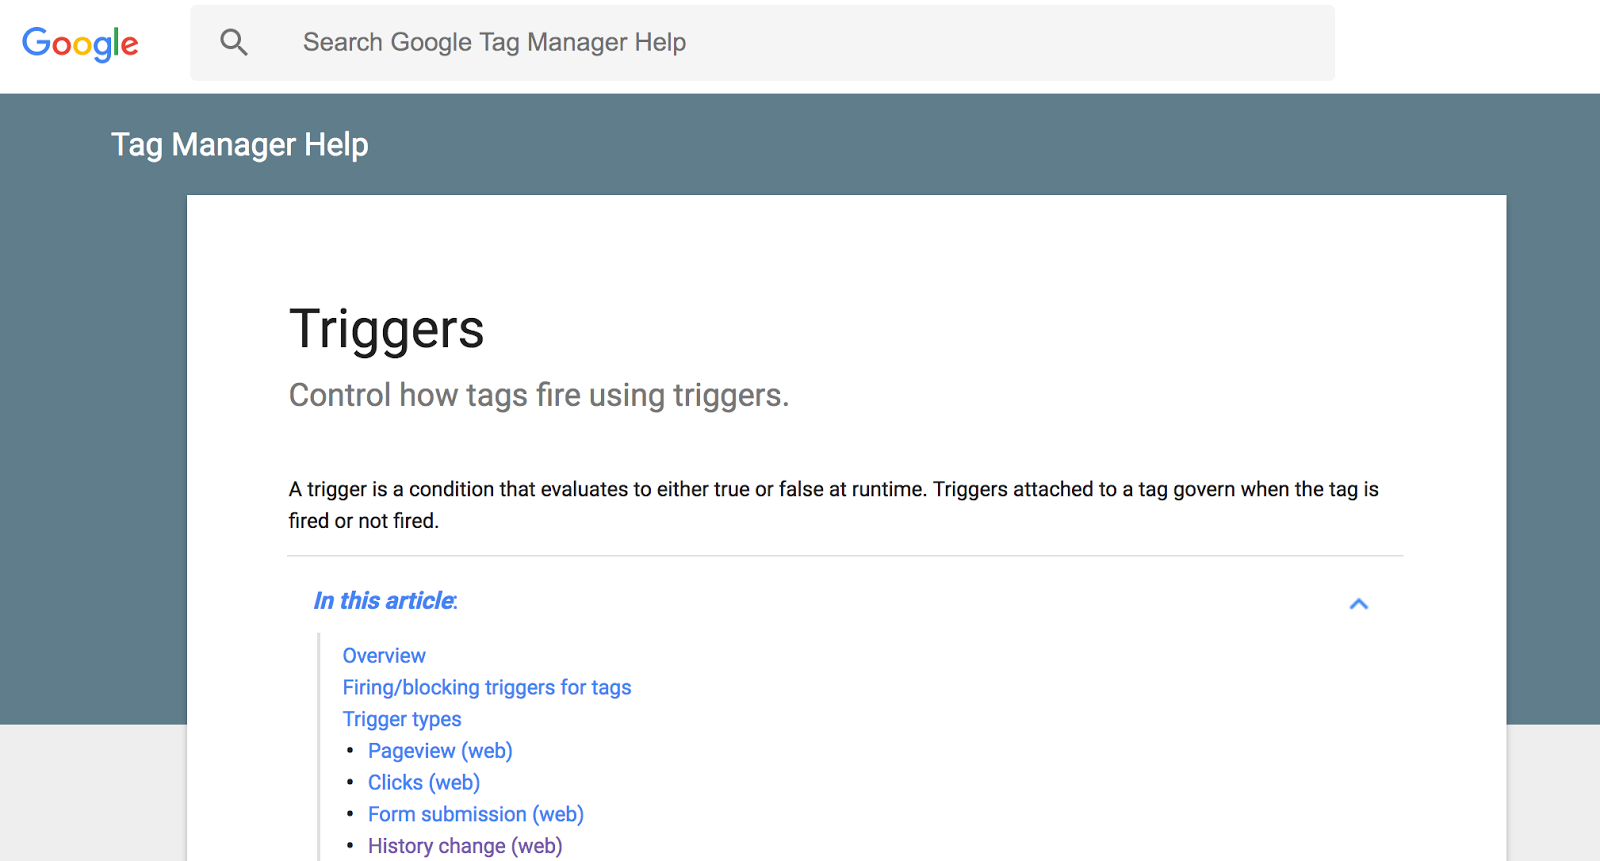 The Tag Manager Help page